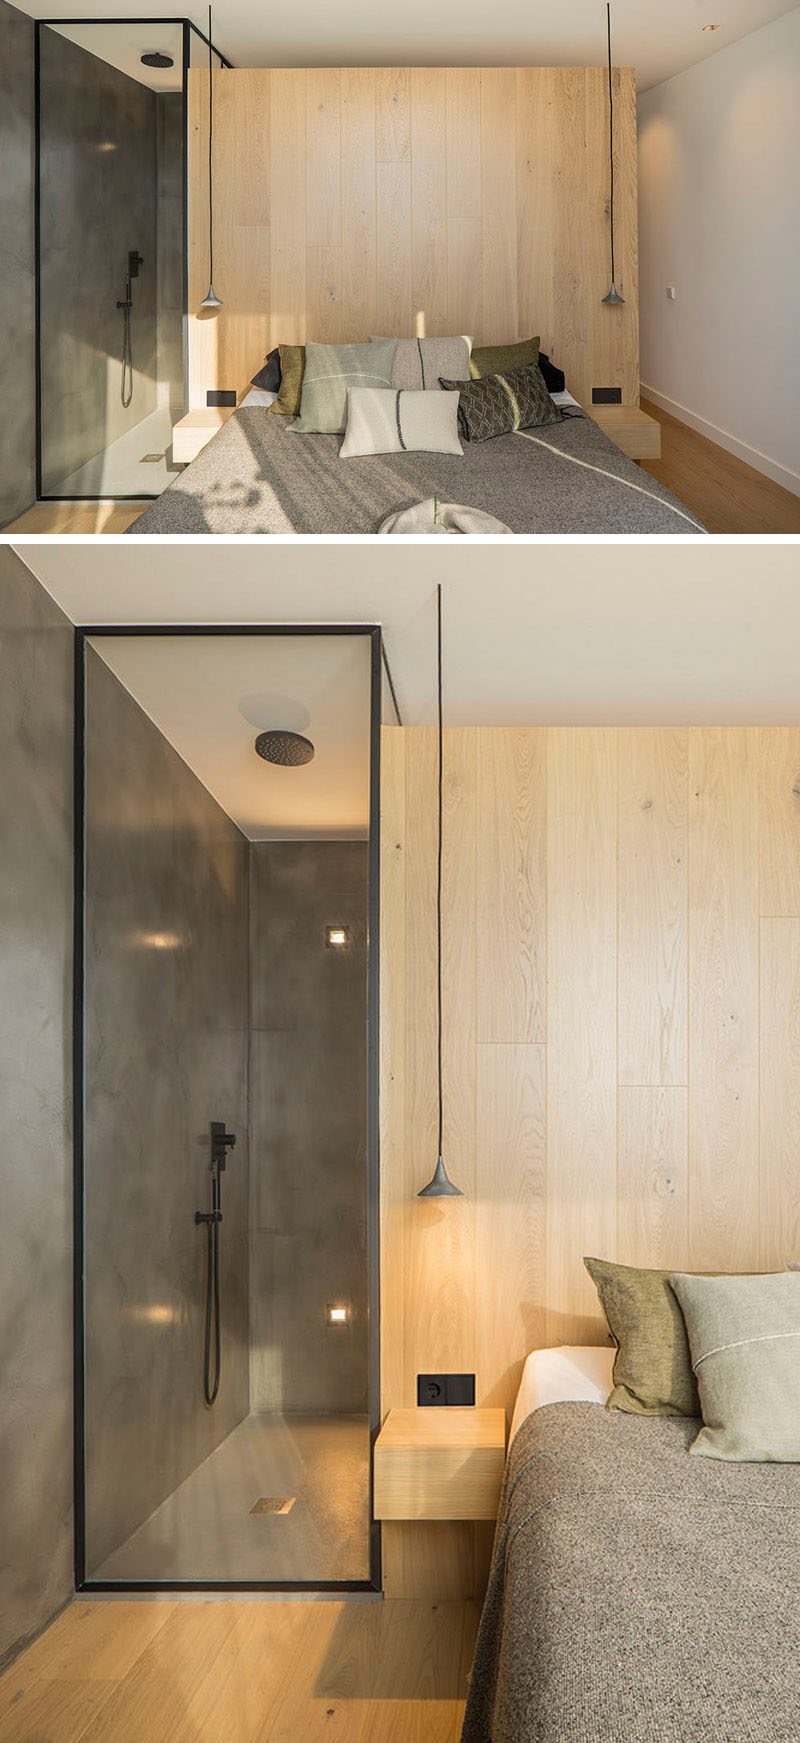 Wood has been introduced to this modern bedroom in the form of a headboard, while the black framed glass enclosed shower is visible to the room.